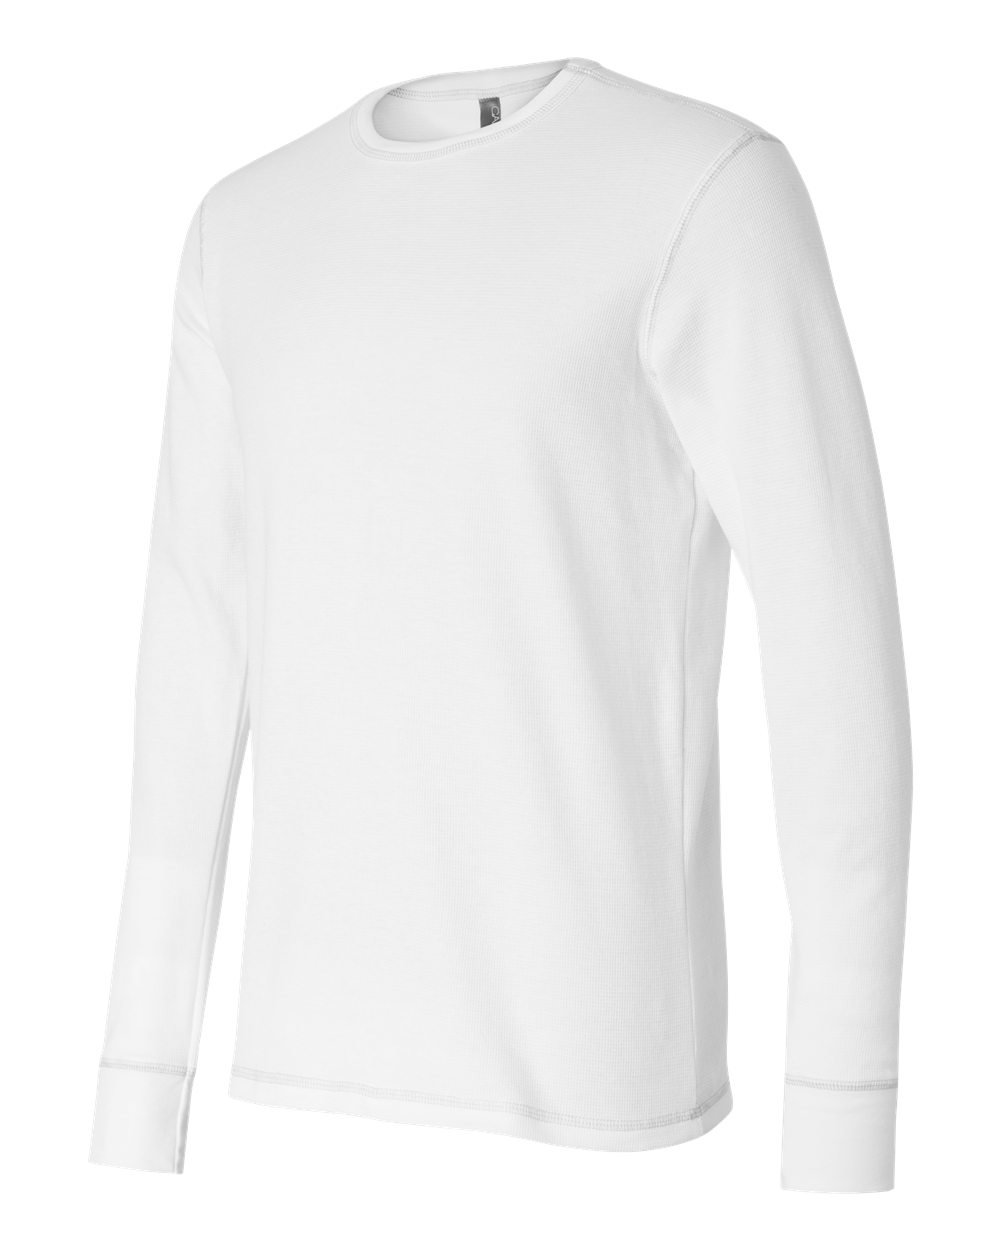 Bella and canvas long sleeve thermal t shirt evan for White thermal t shirt